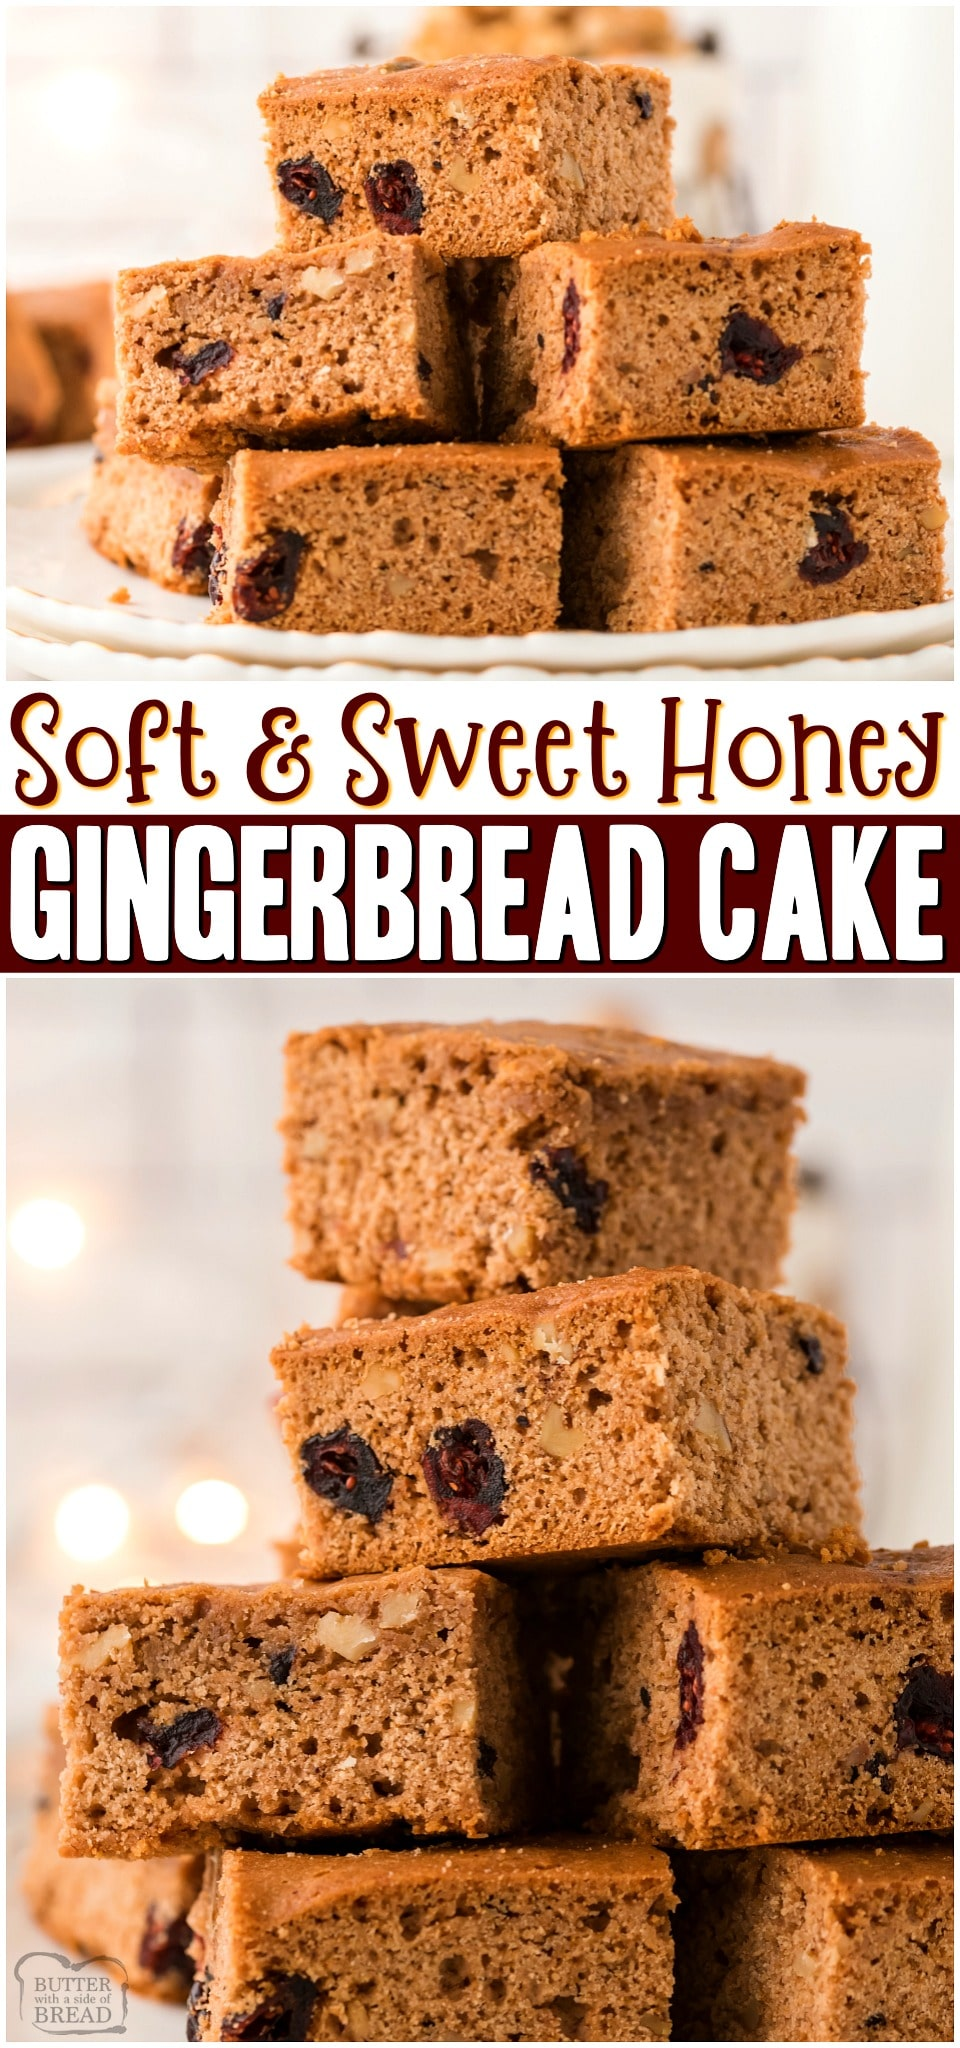 Gingerbread Cake made with honey instead of molasses for a sweetly spiced holiday cake!  Festive Gingerbread cake with cranberries & walnuts perfect for dessert! #cake #honey #gingerbread #holidays #Christmas #baking #easyrecipe from BUTTER WITH A SIDE OF BREAD